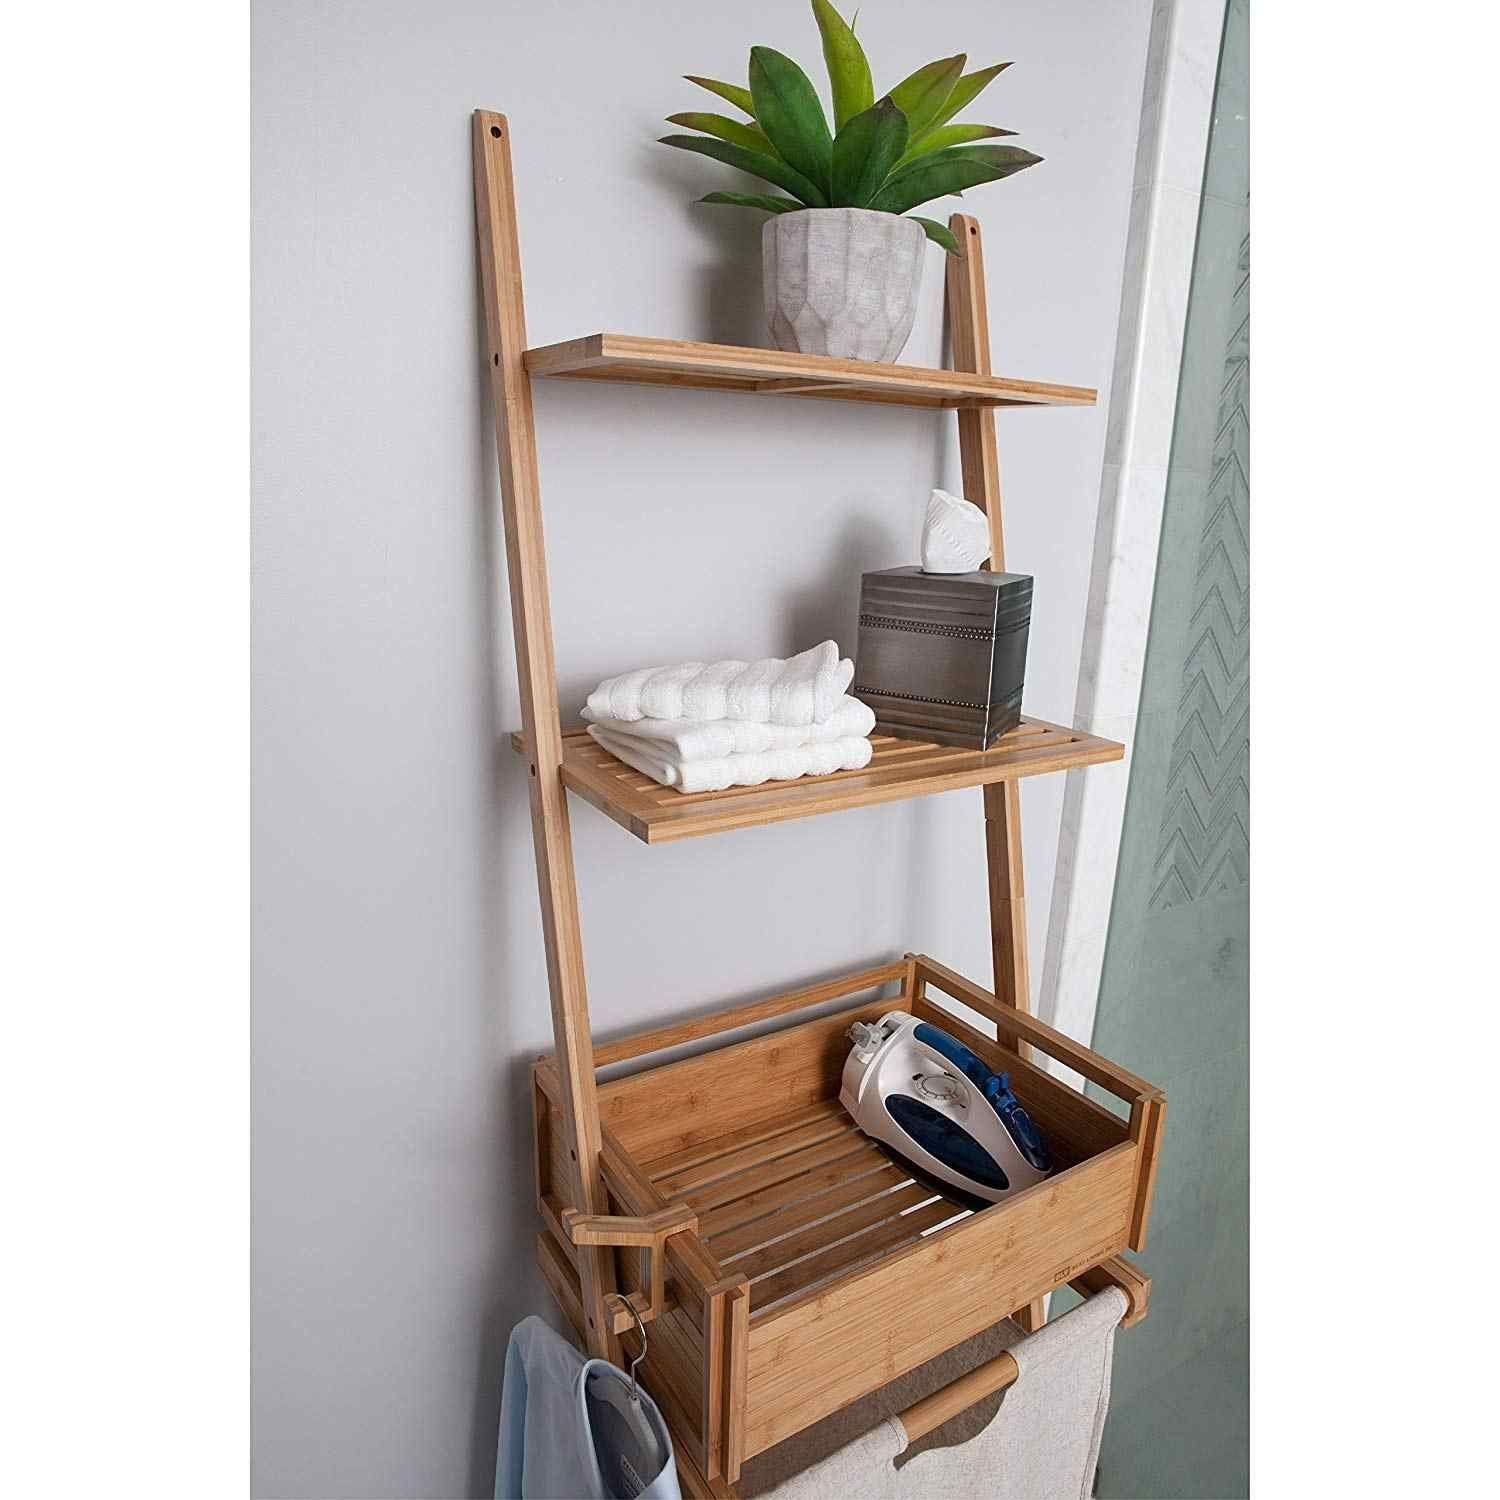 Source New Style Basket Laundry Bag On M Alibaba Com Bathroom Baskets Basket Shelves Bamboo Shelf